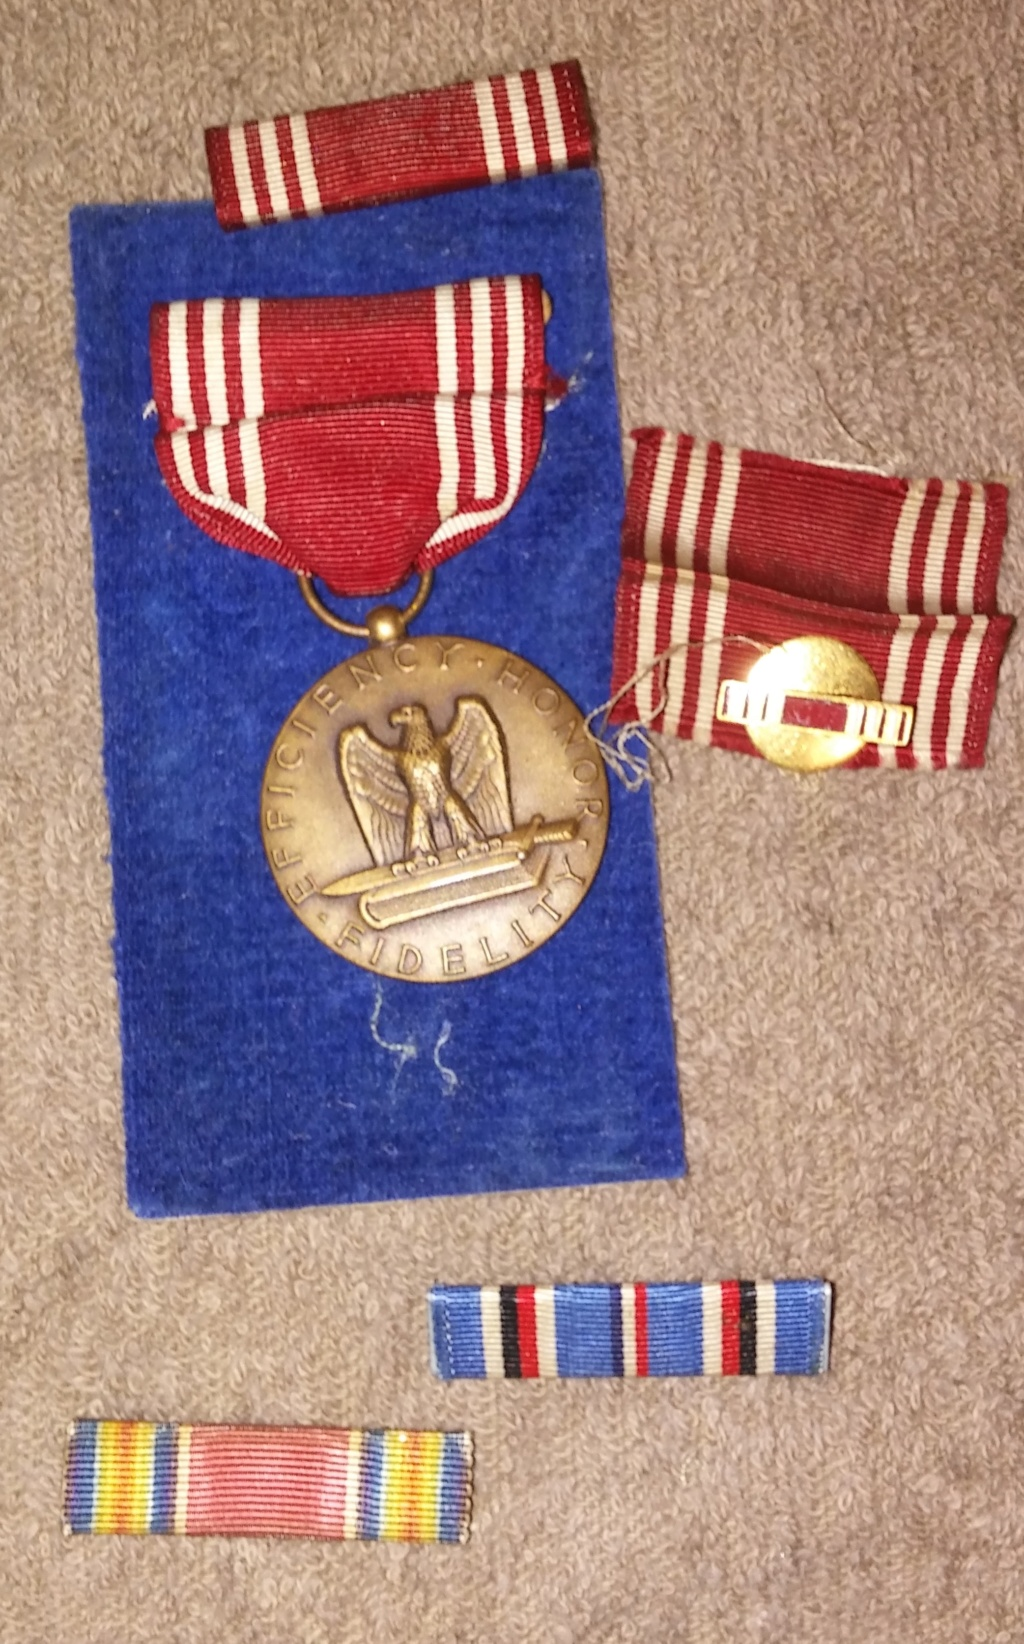 Things from my Uncle Russel's time in the 801st Tank Destroyer Bn. in WW2 19700237